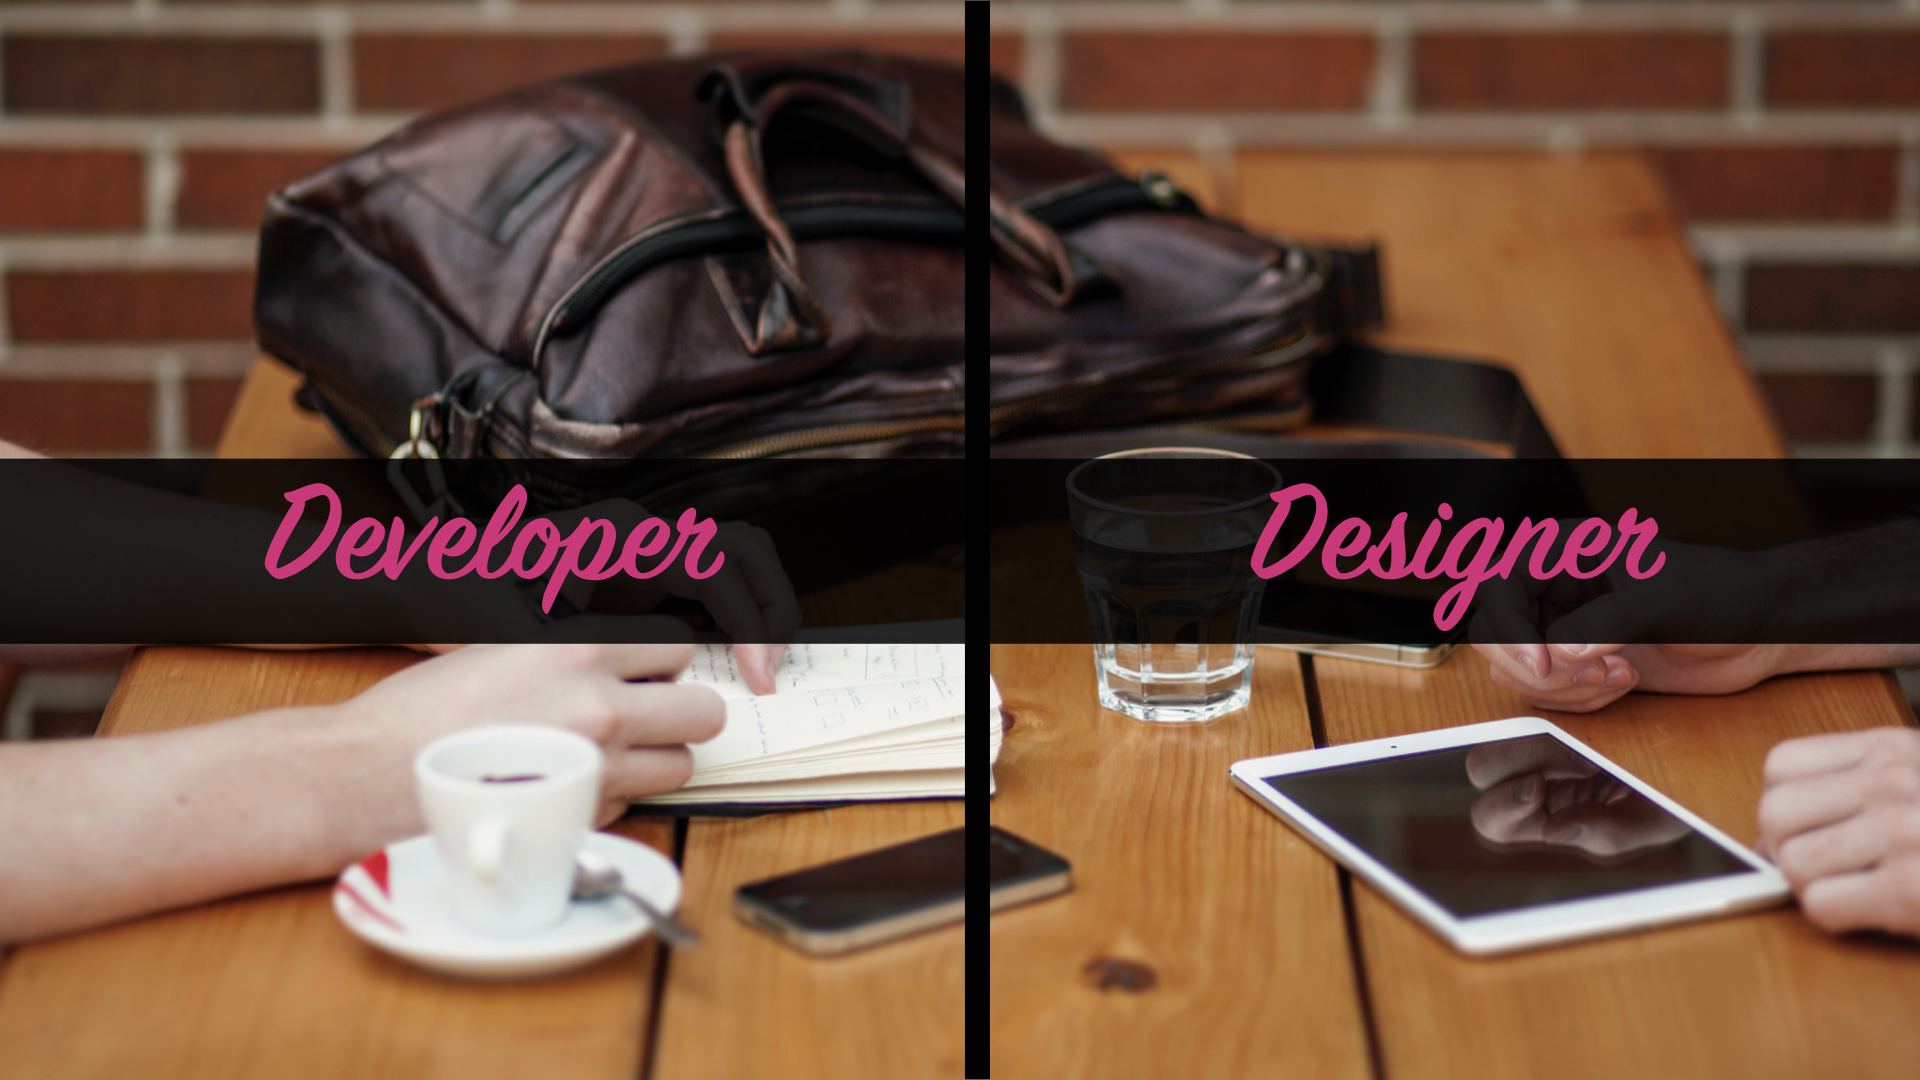 Developer versus designer.